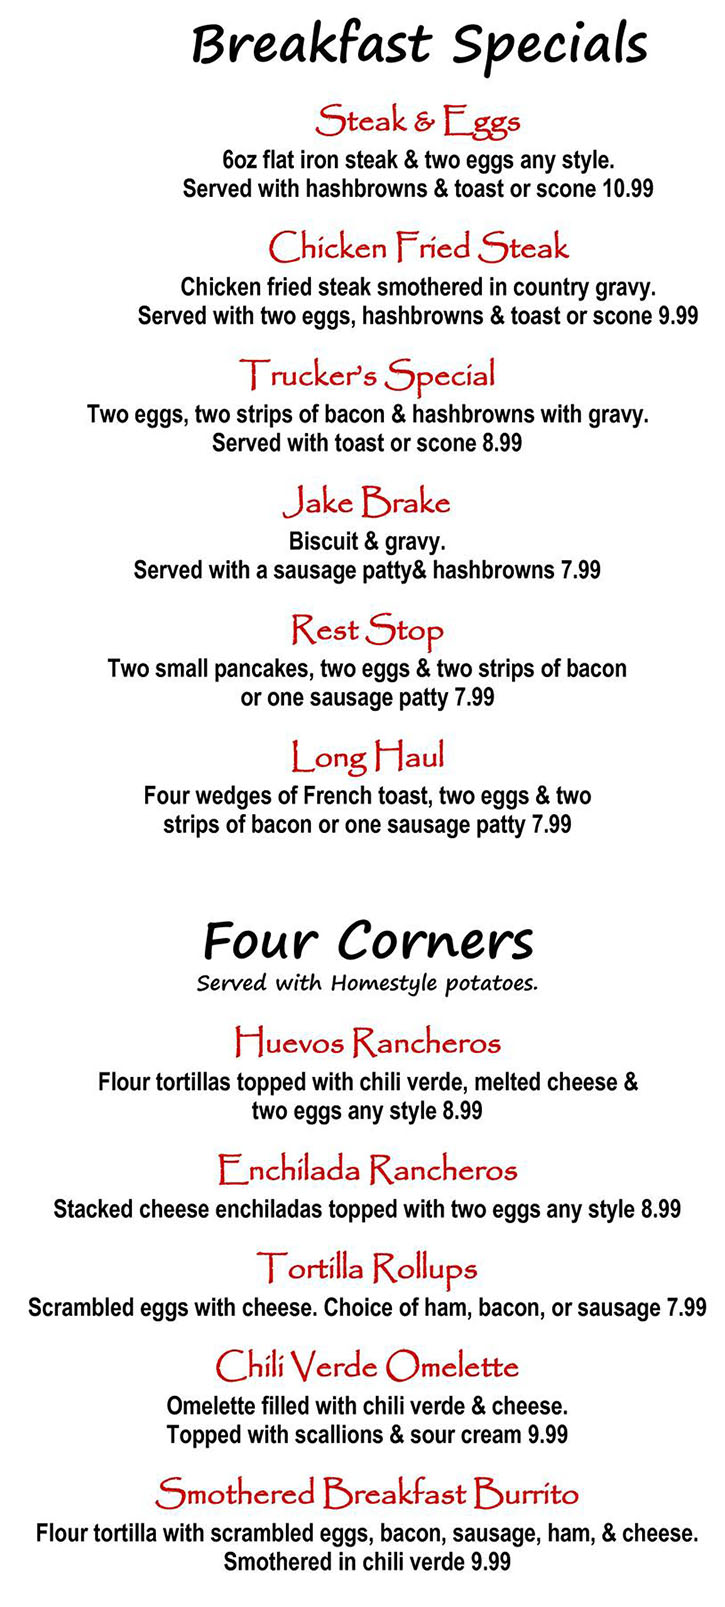 Alice's Kitchen menu - breakfast specials, four corners